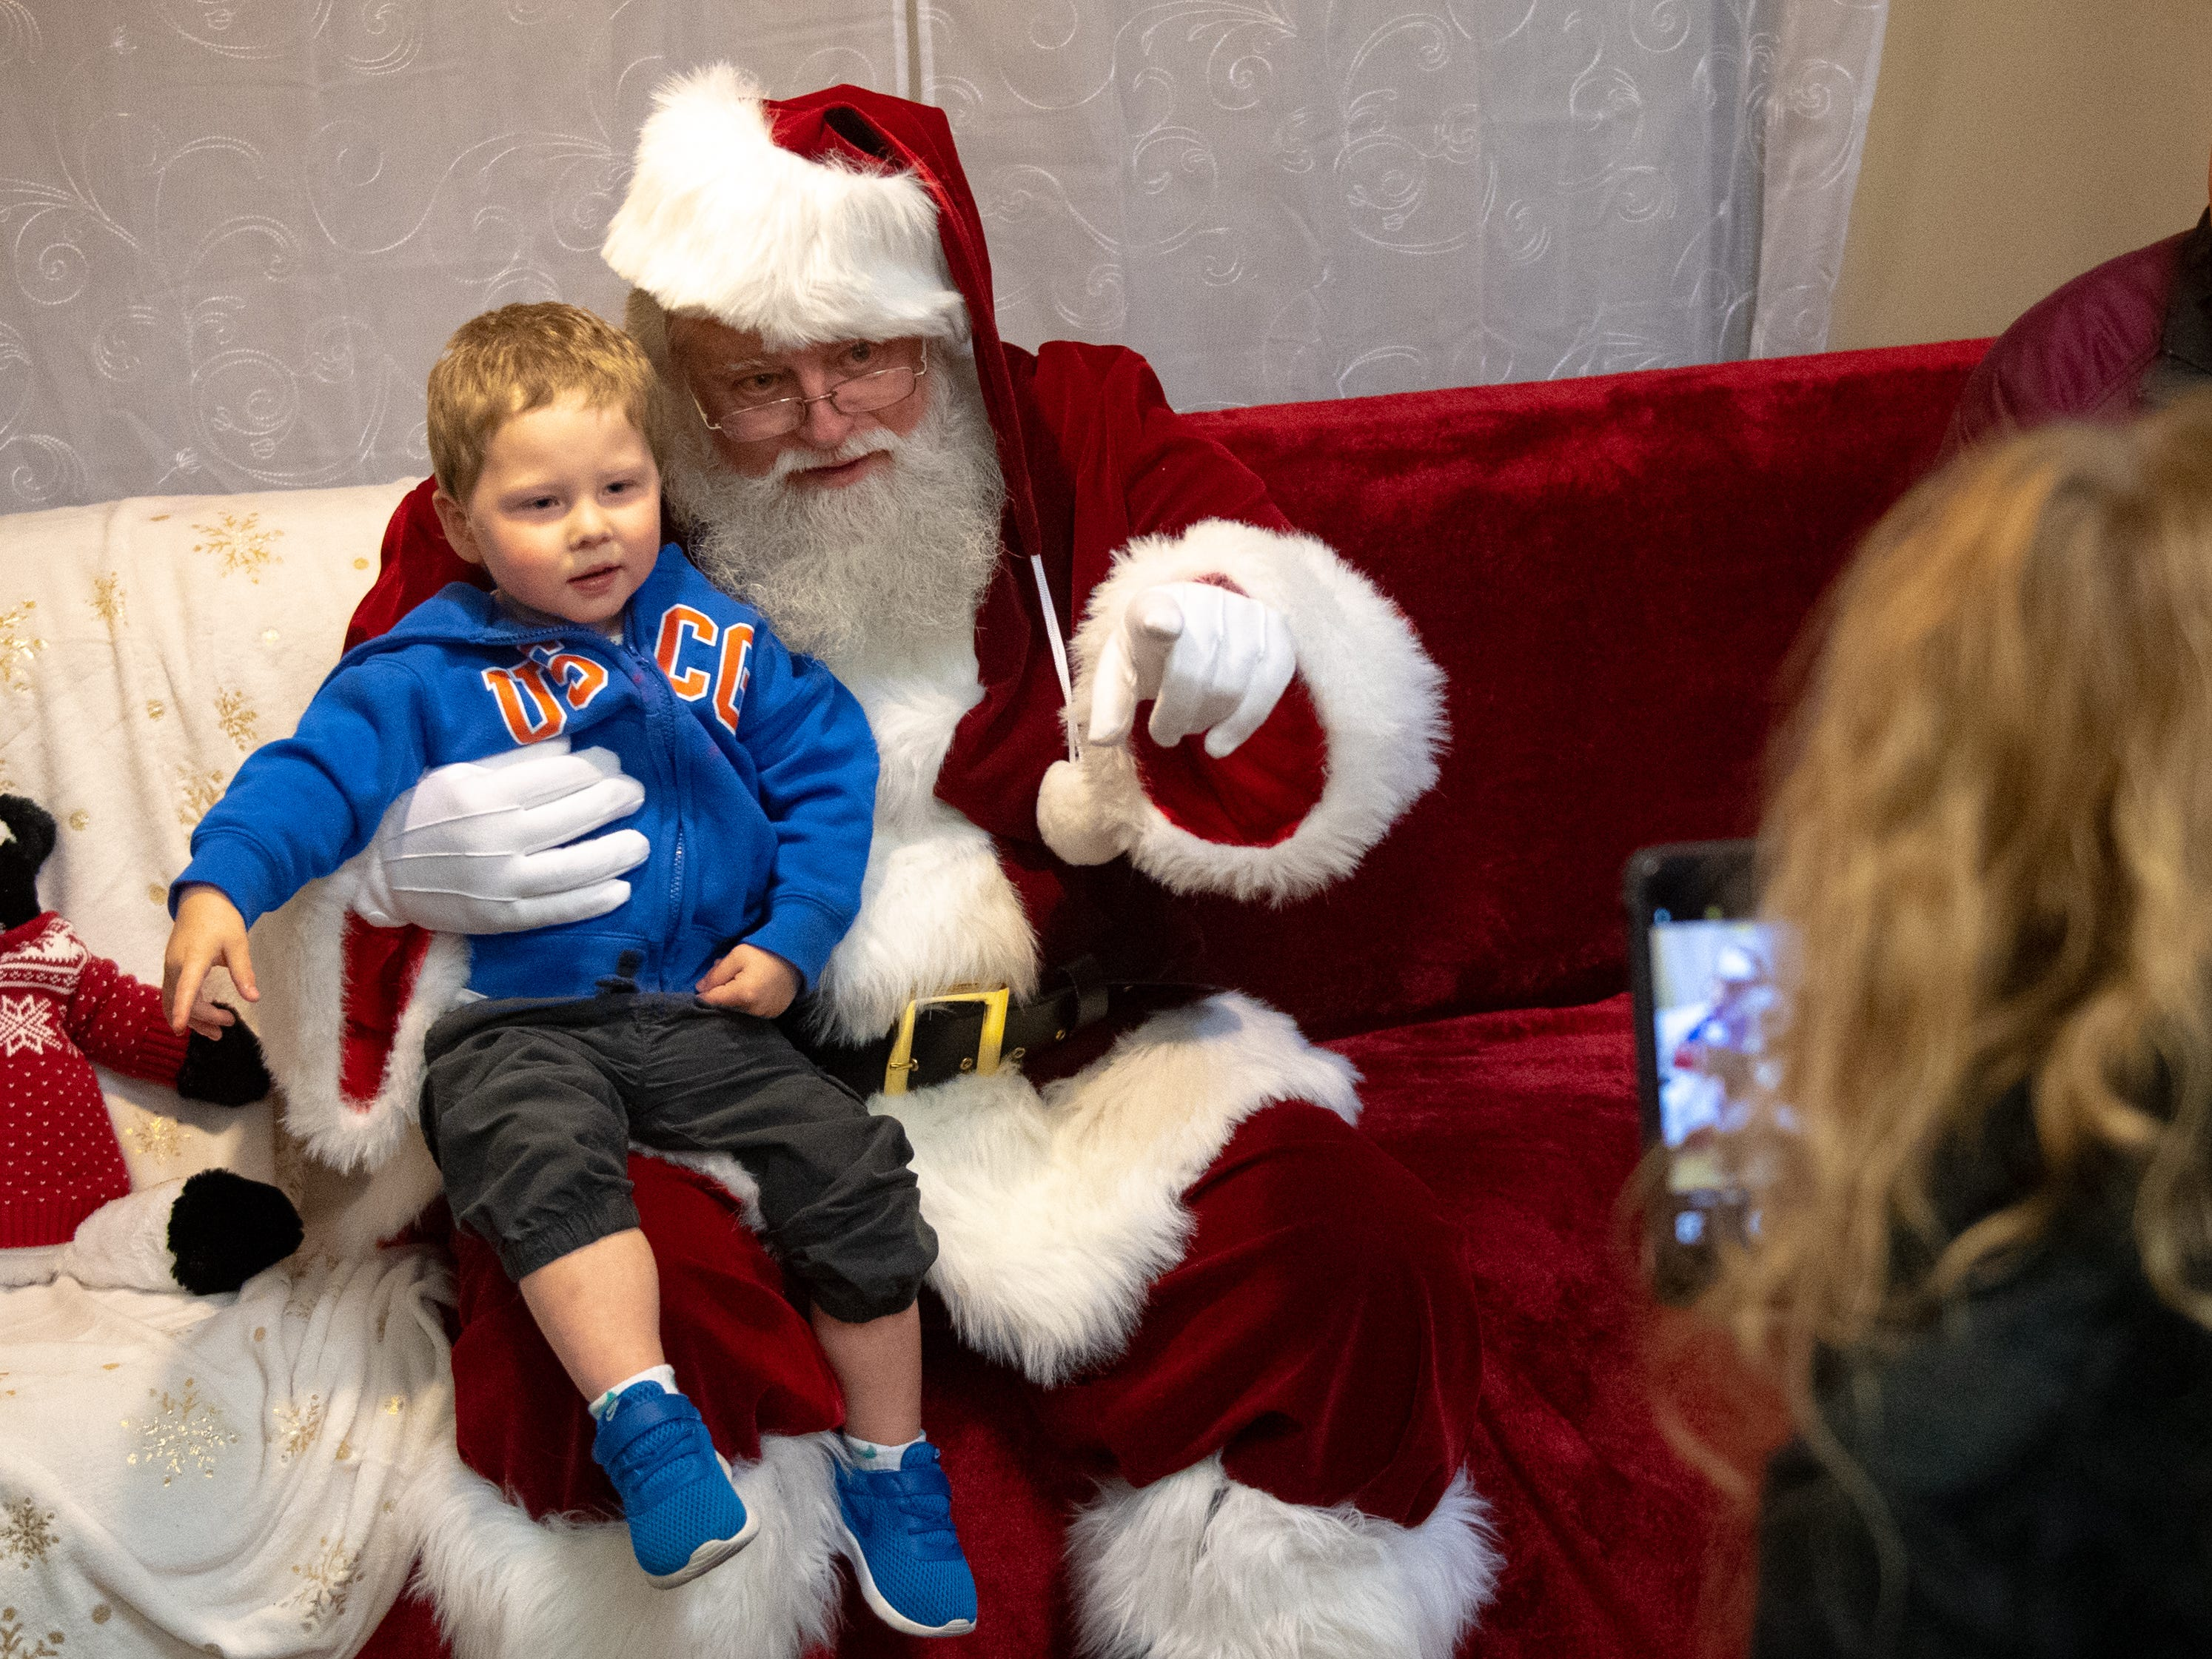 Carson Wertz, 2, of Newberry Township, poses with old Saint Nick for a photo during the Dinner with Santa and Santa Cow at Chick-fil-A in Springettsbury Township. Children were taught a few words in sign language as part of the special night designed to promote inclusion for the hearing-impaired community .